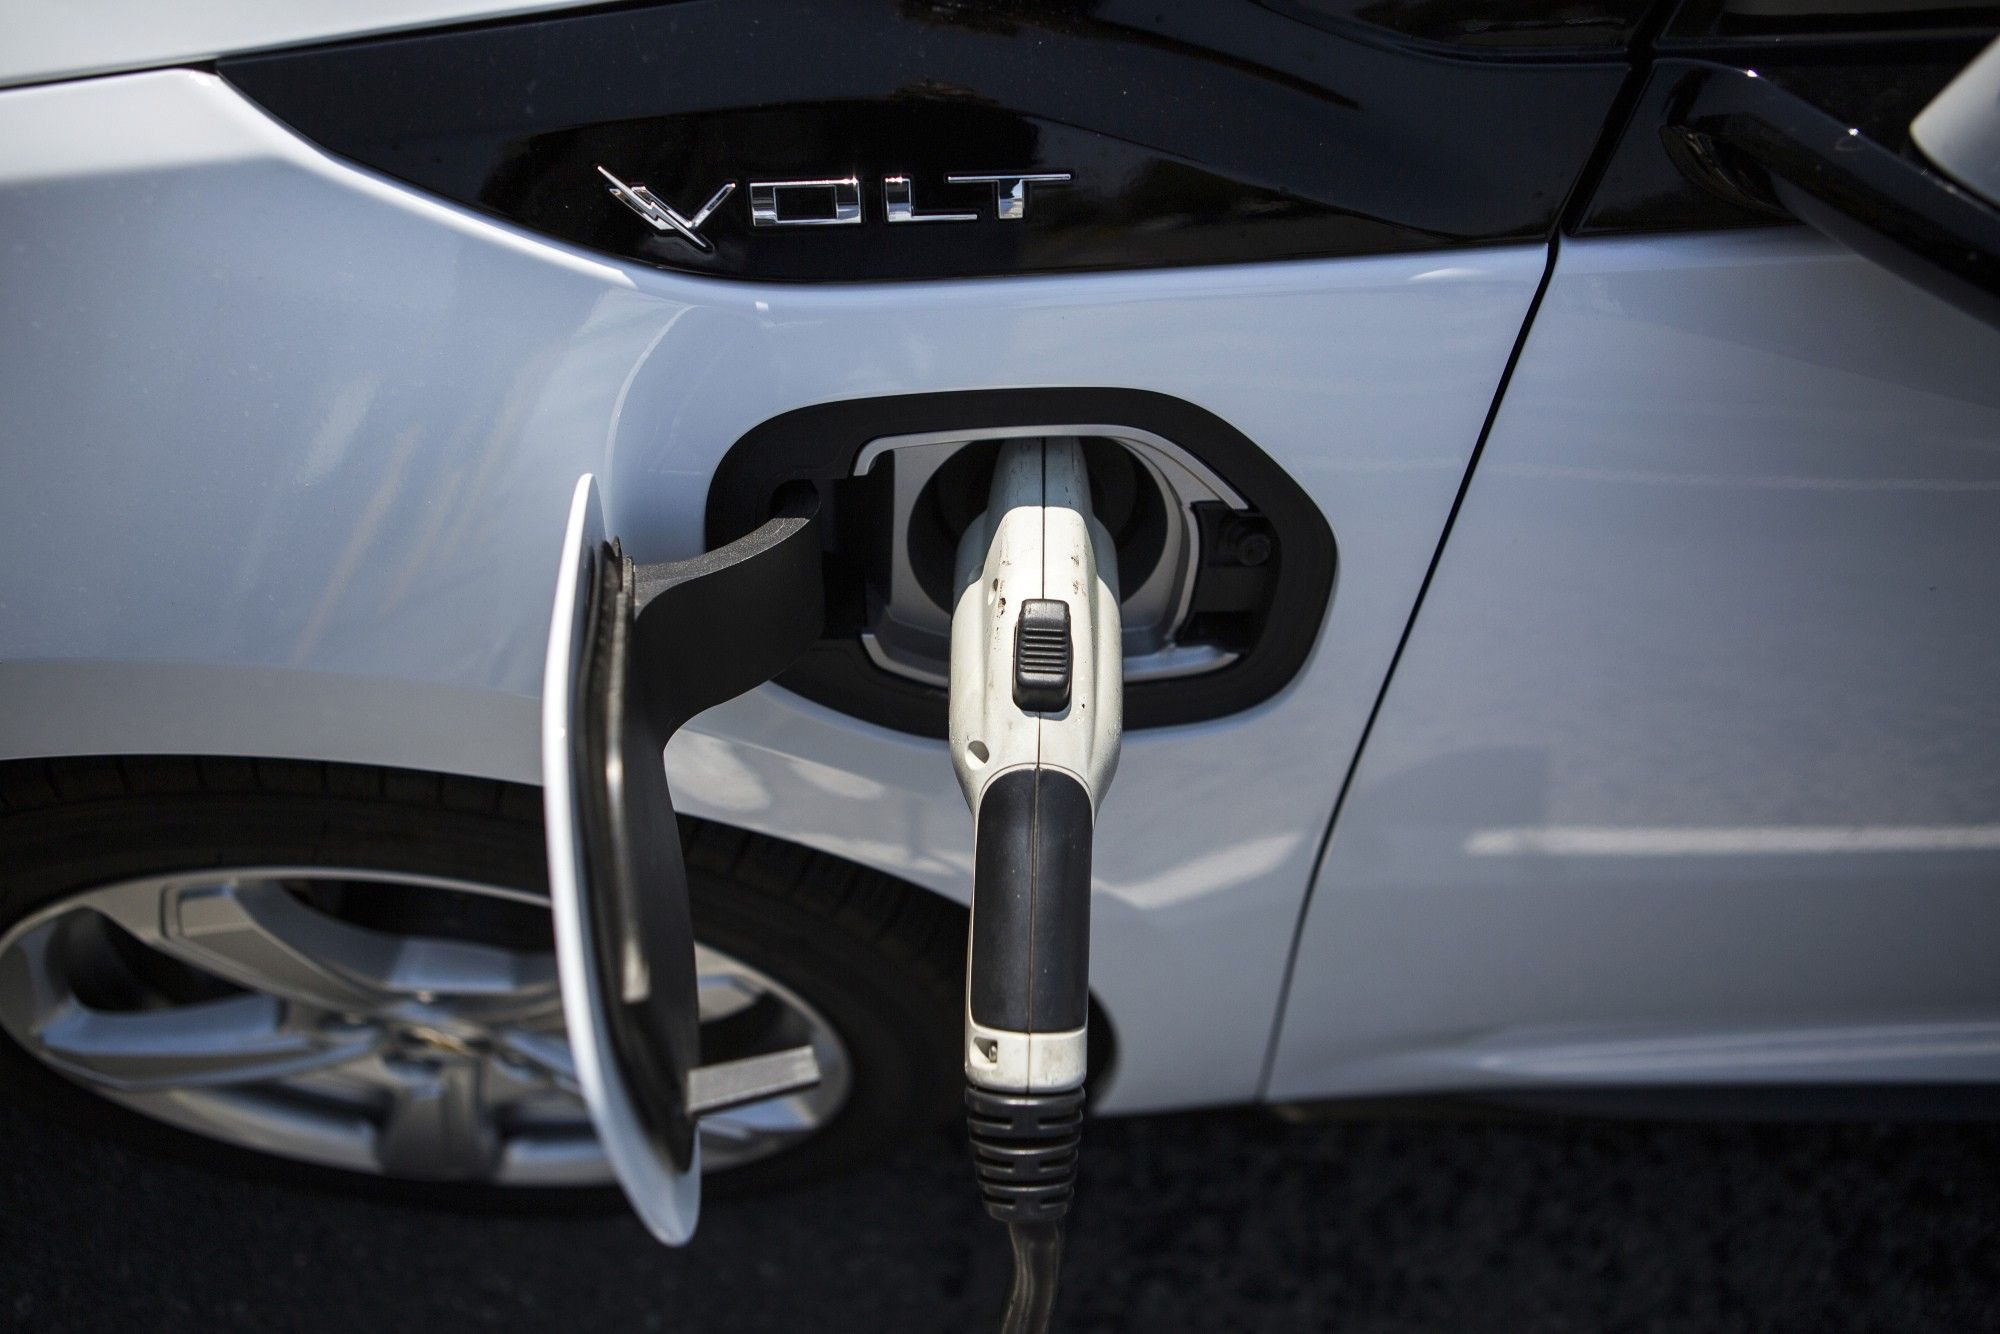 Electric Vehicle Charging Stations As City Council Signs Off For Funding